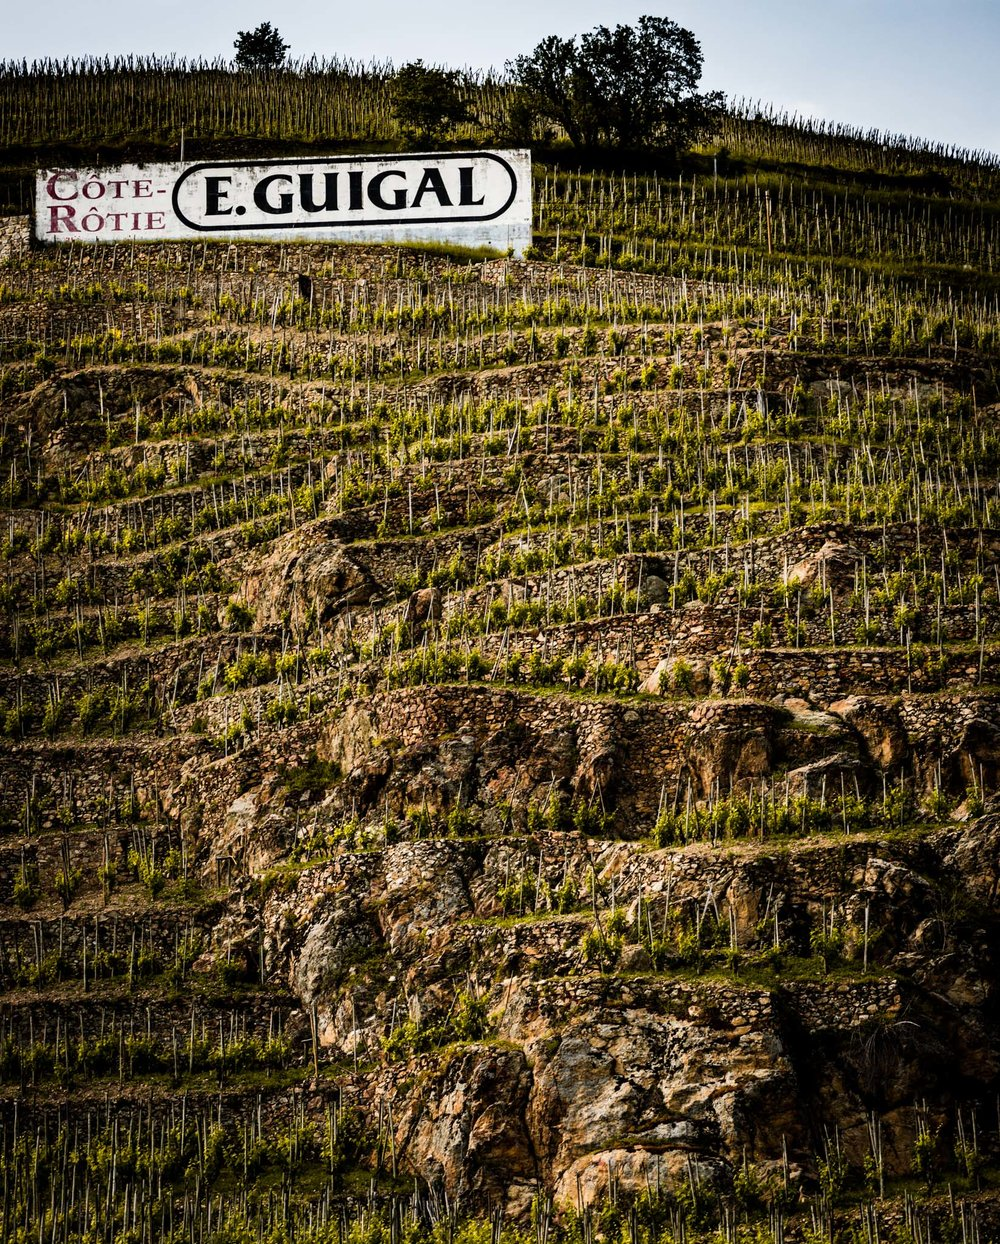 France : Northern Rhone : Guigal's La Mouline vineyard on the Cote Blonde in Cote Rotie